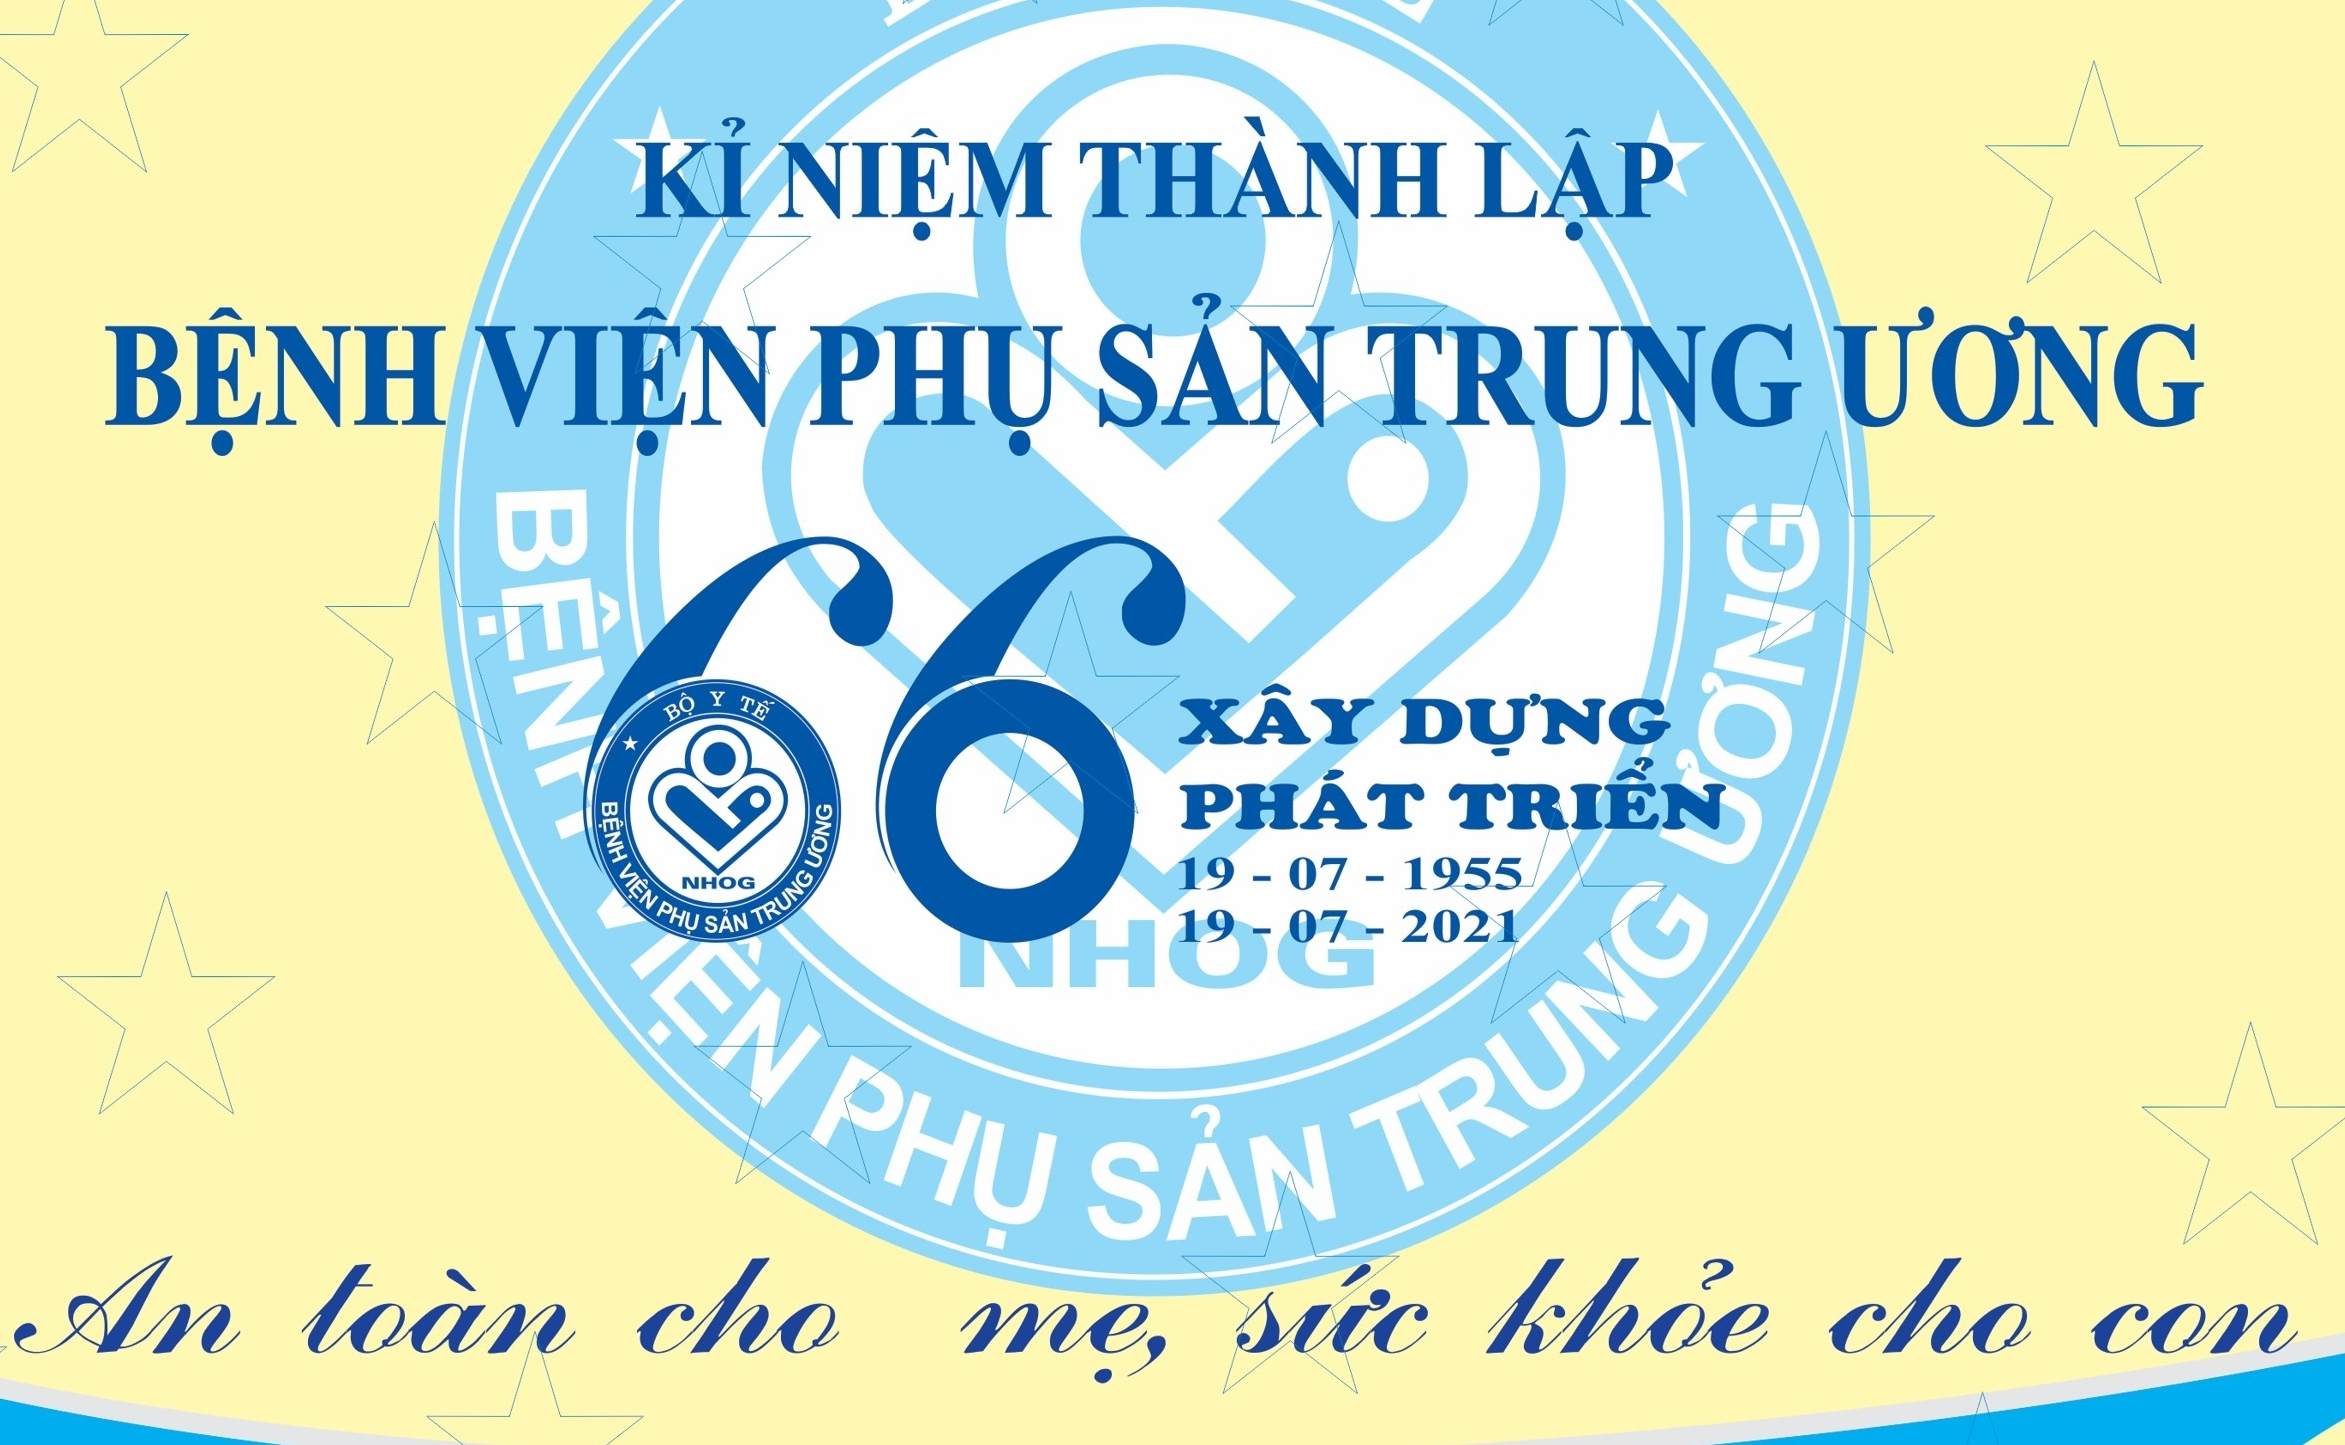 http://m.doisong.vn/stores/news_dataimages/vtkien/072021/20/08/croped/Picture1.jpg